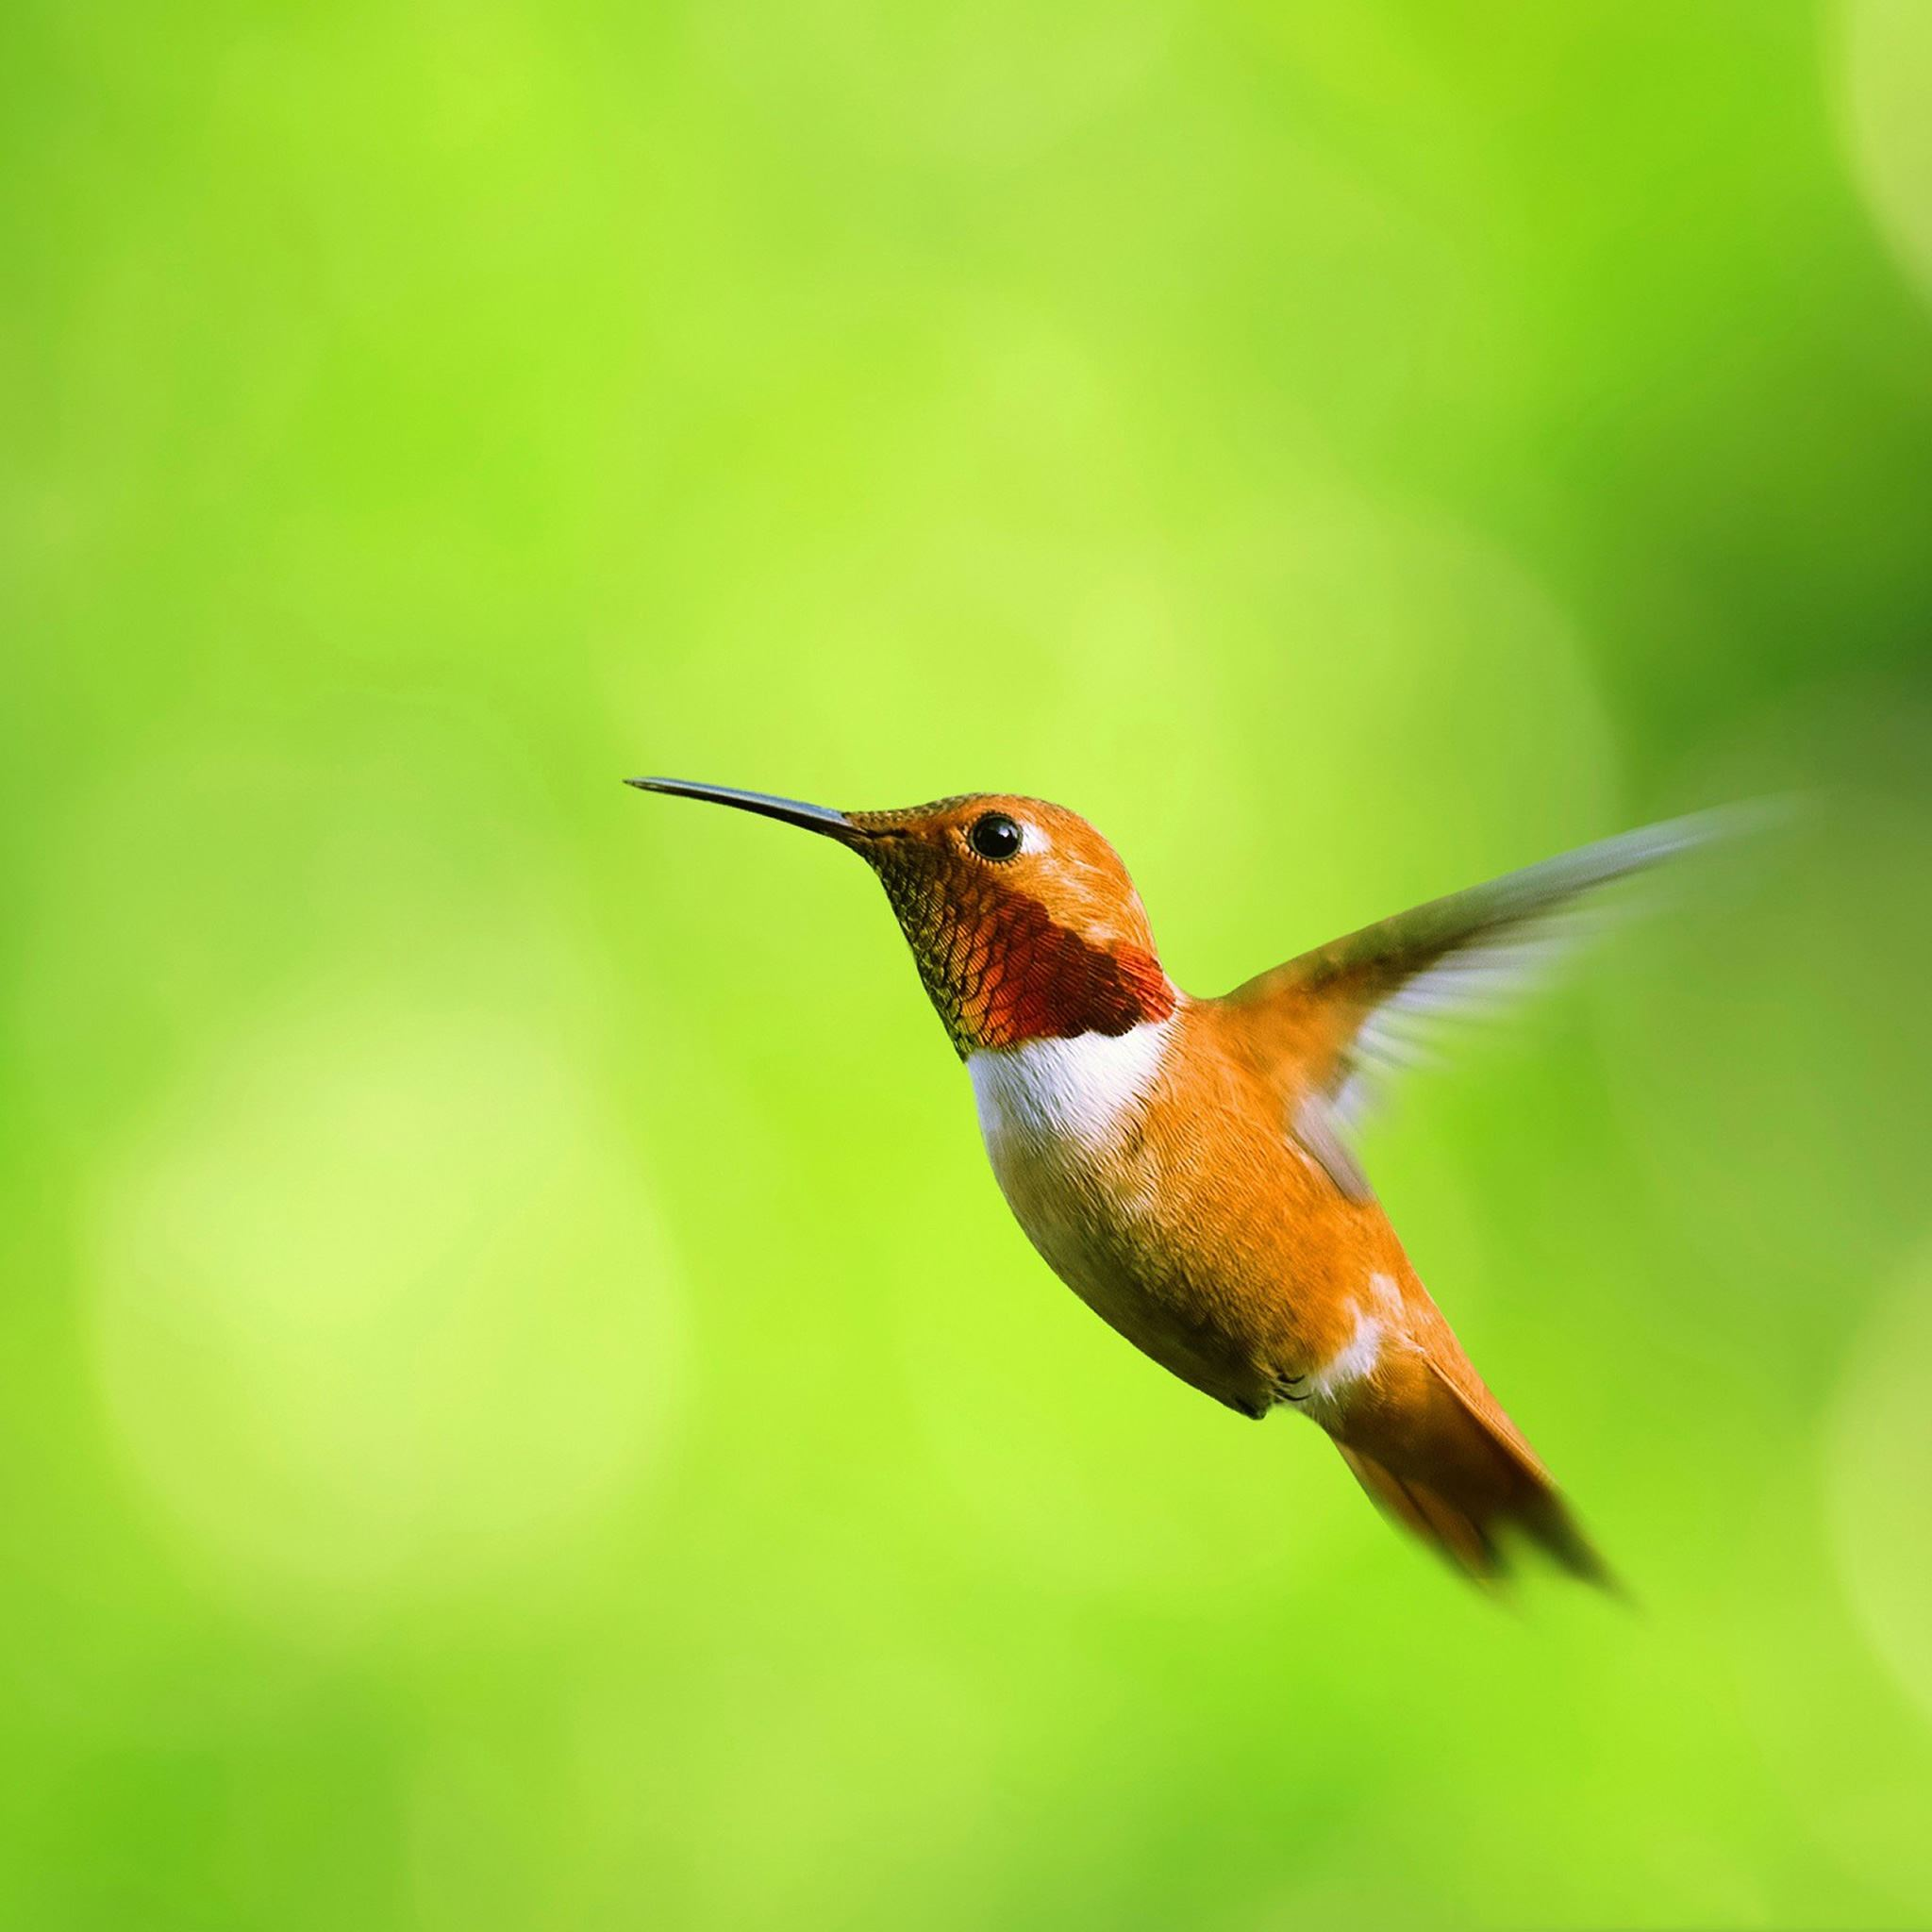 Hummingbirds iPad Air wallpaper